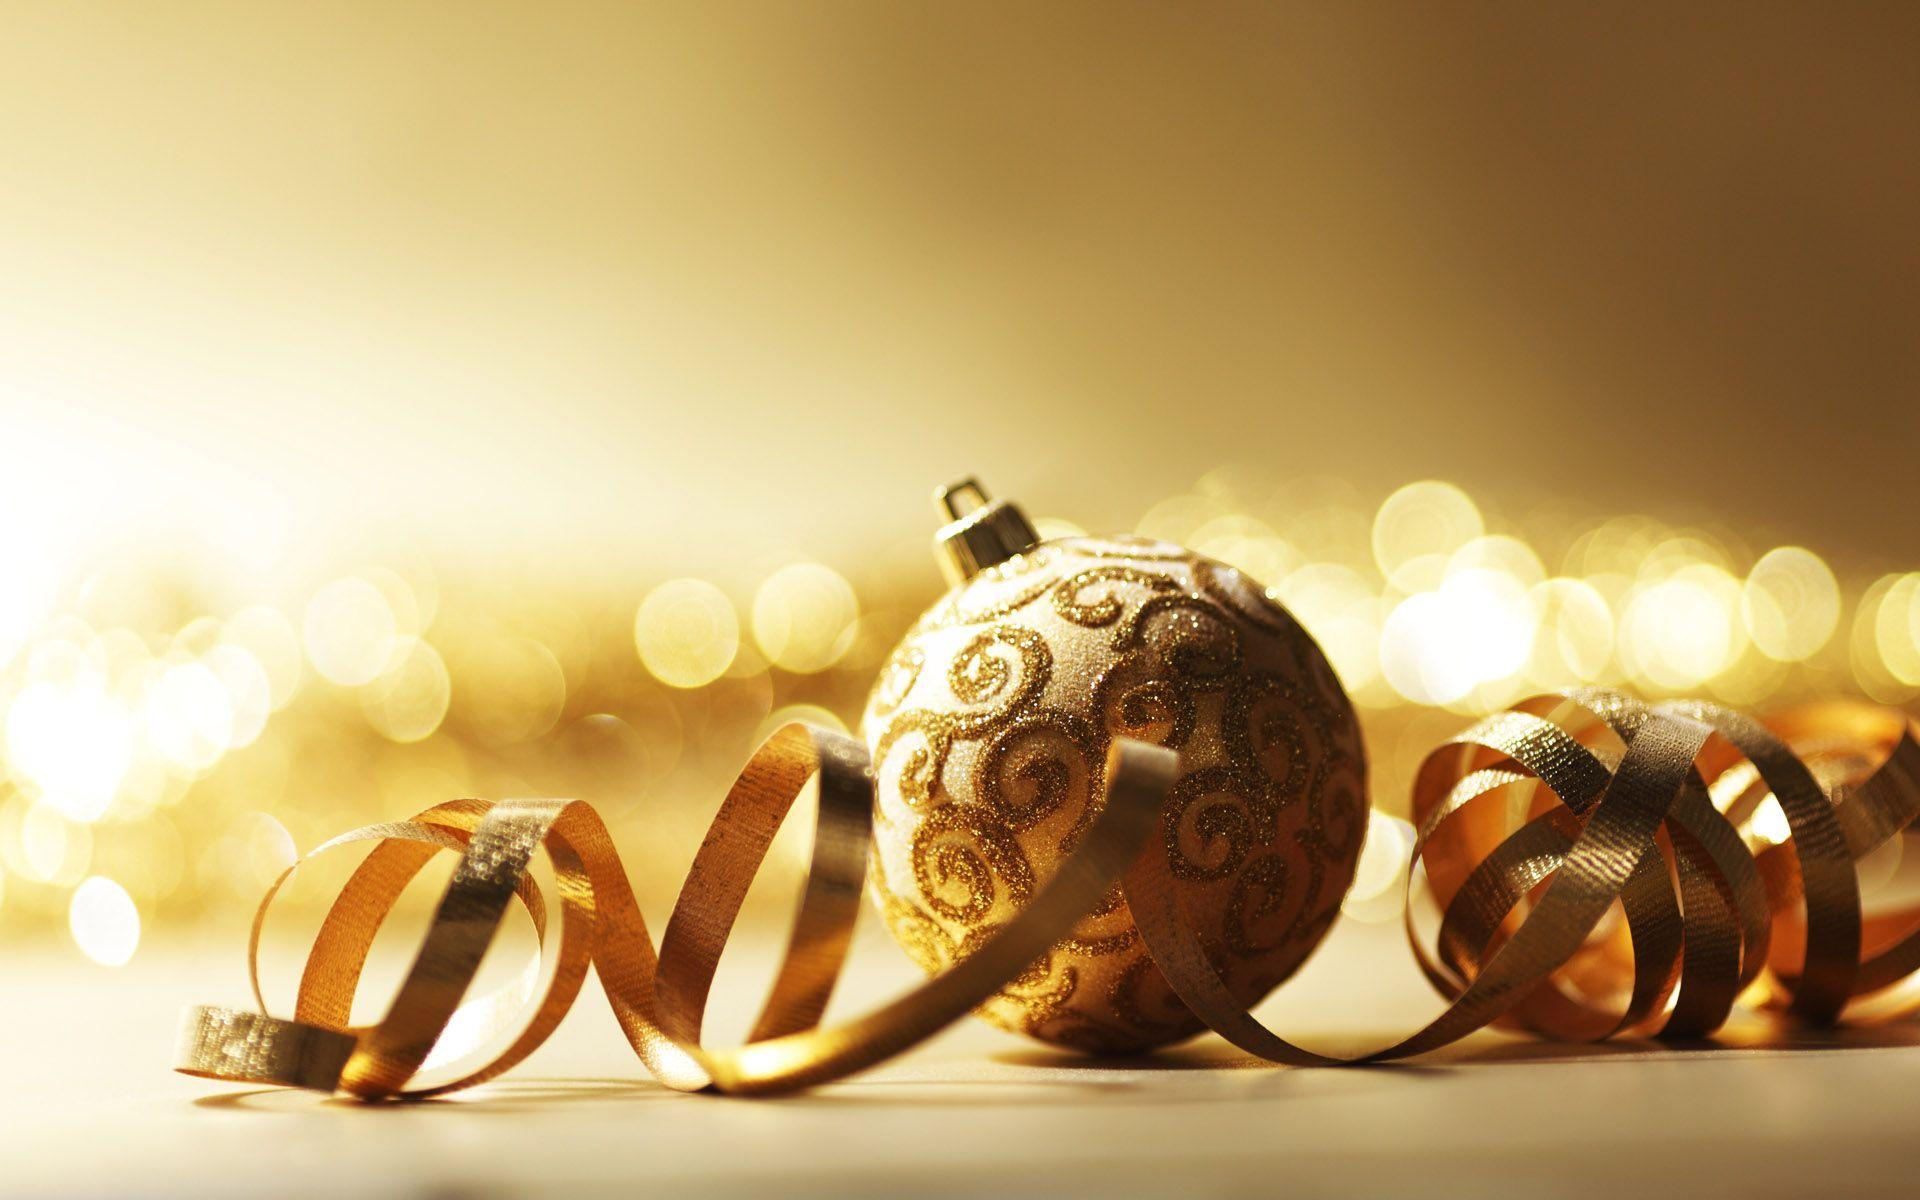 Wallpapers For > Christmas Lights And Ornaments Backgrounds